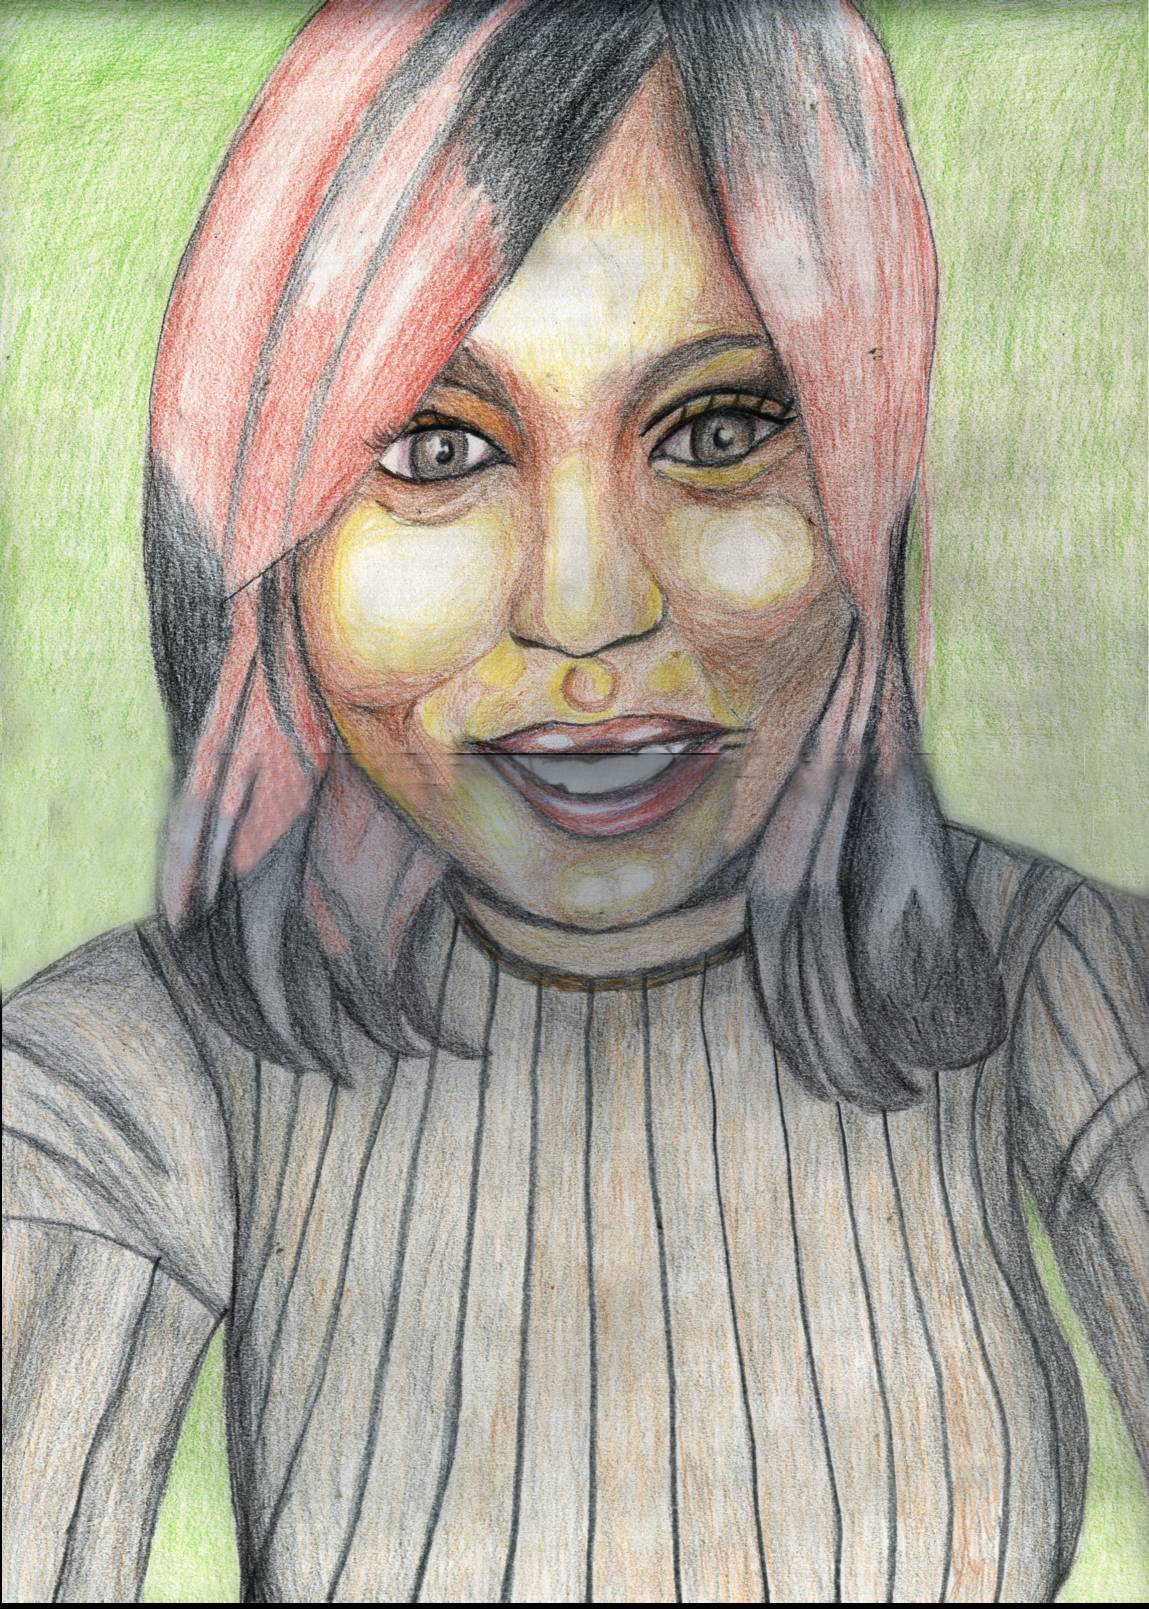 Olayemi coloured pencil drawing